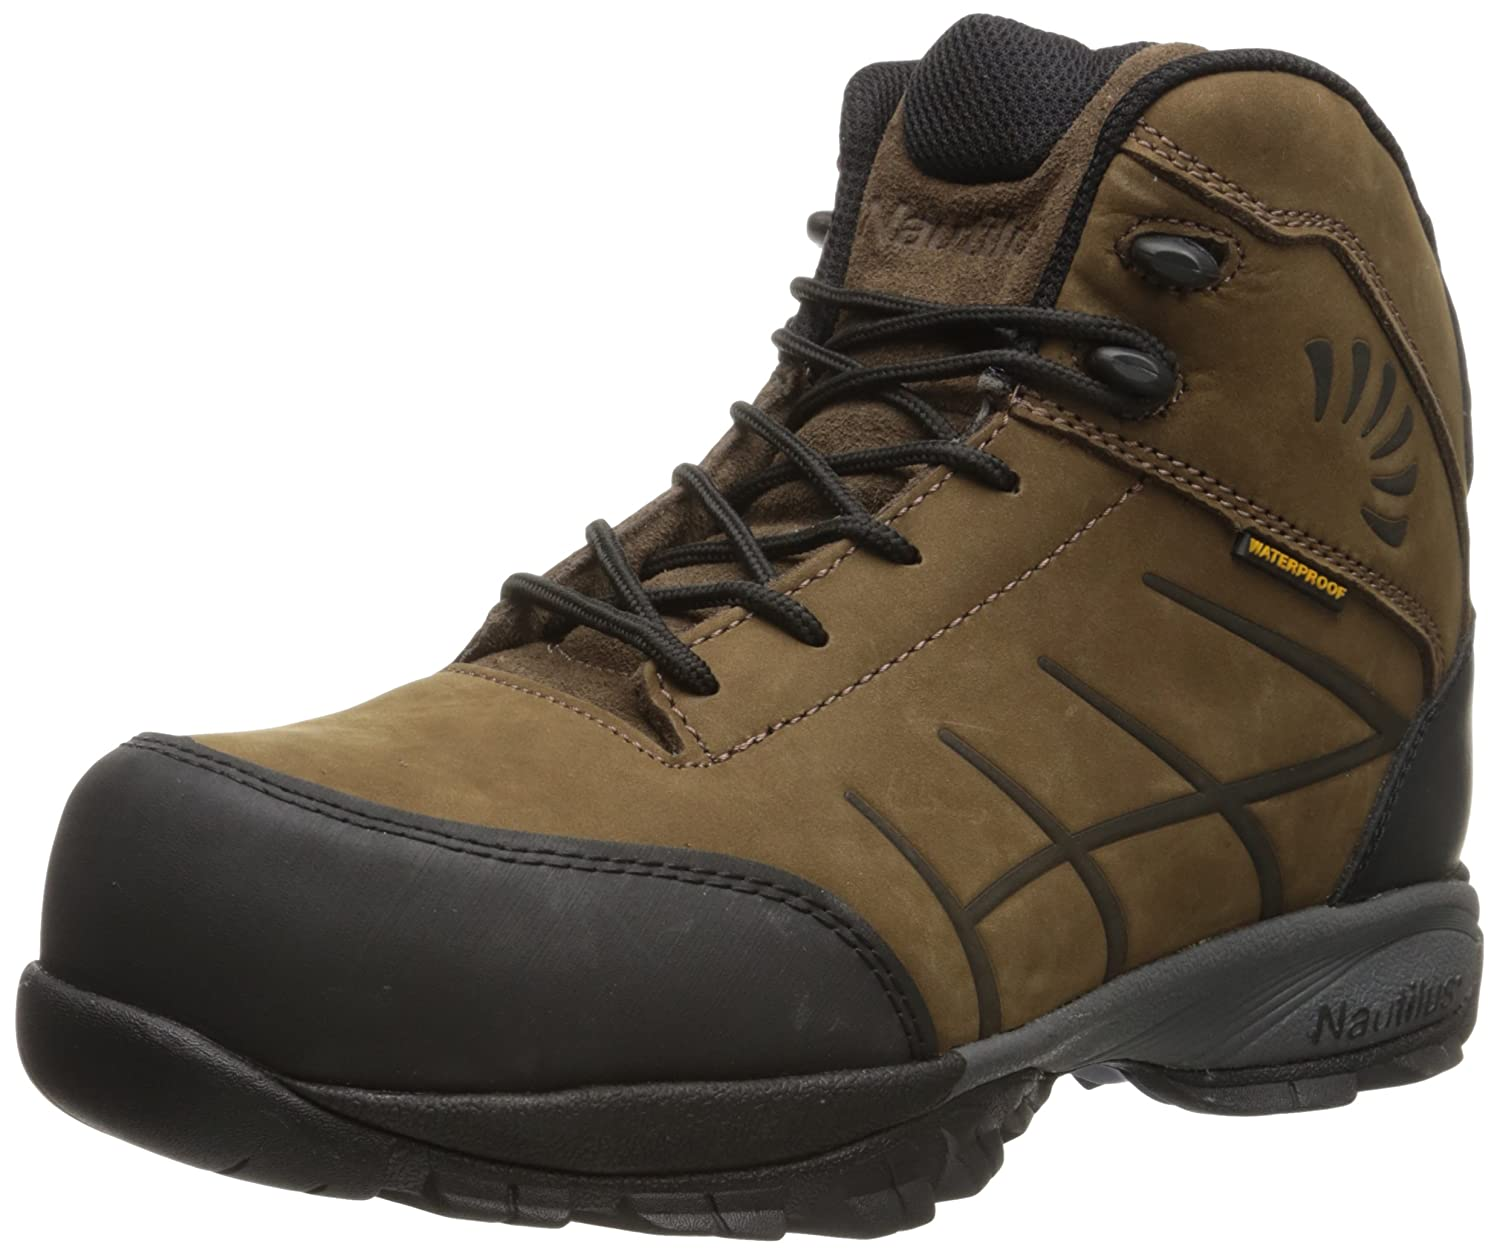 Nautilus Safety Footwear メンズ ブラウン 9.5 2E US 9.5 2E USブラウン B00ETQ2F7M